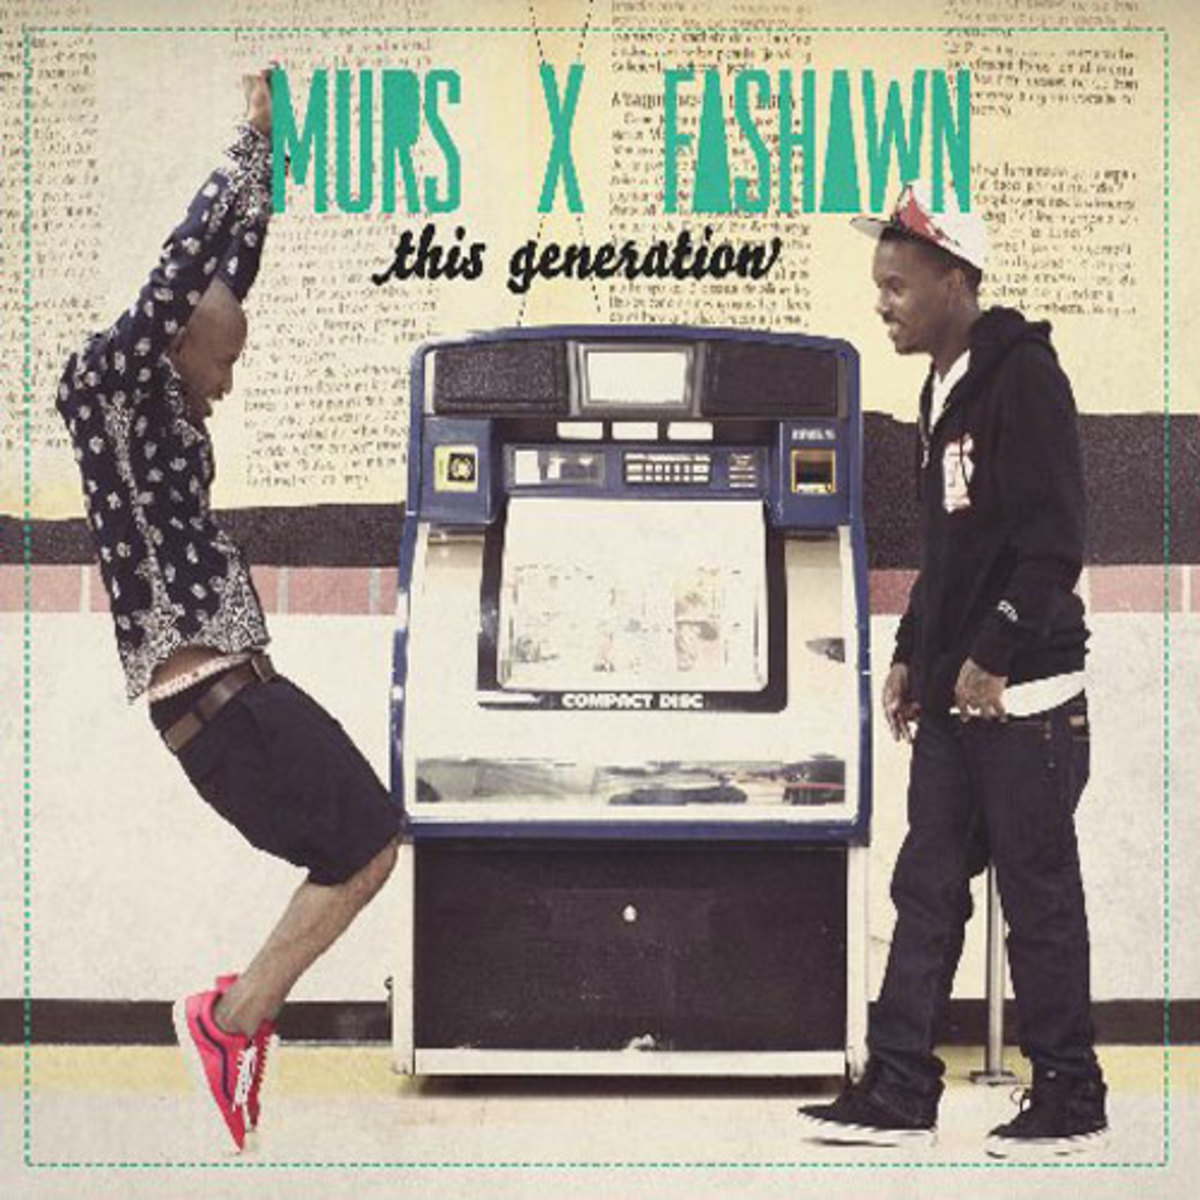 mursfashawn-thisgeneration.jpg